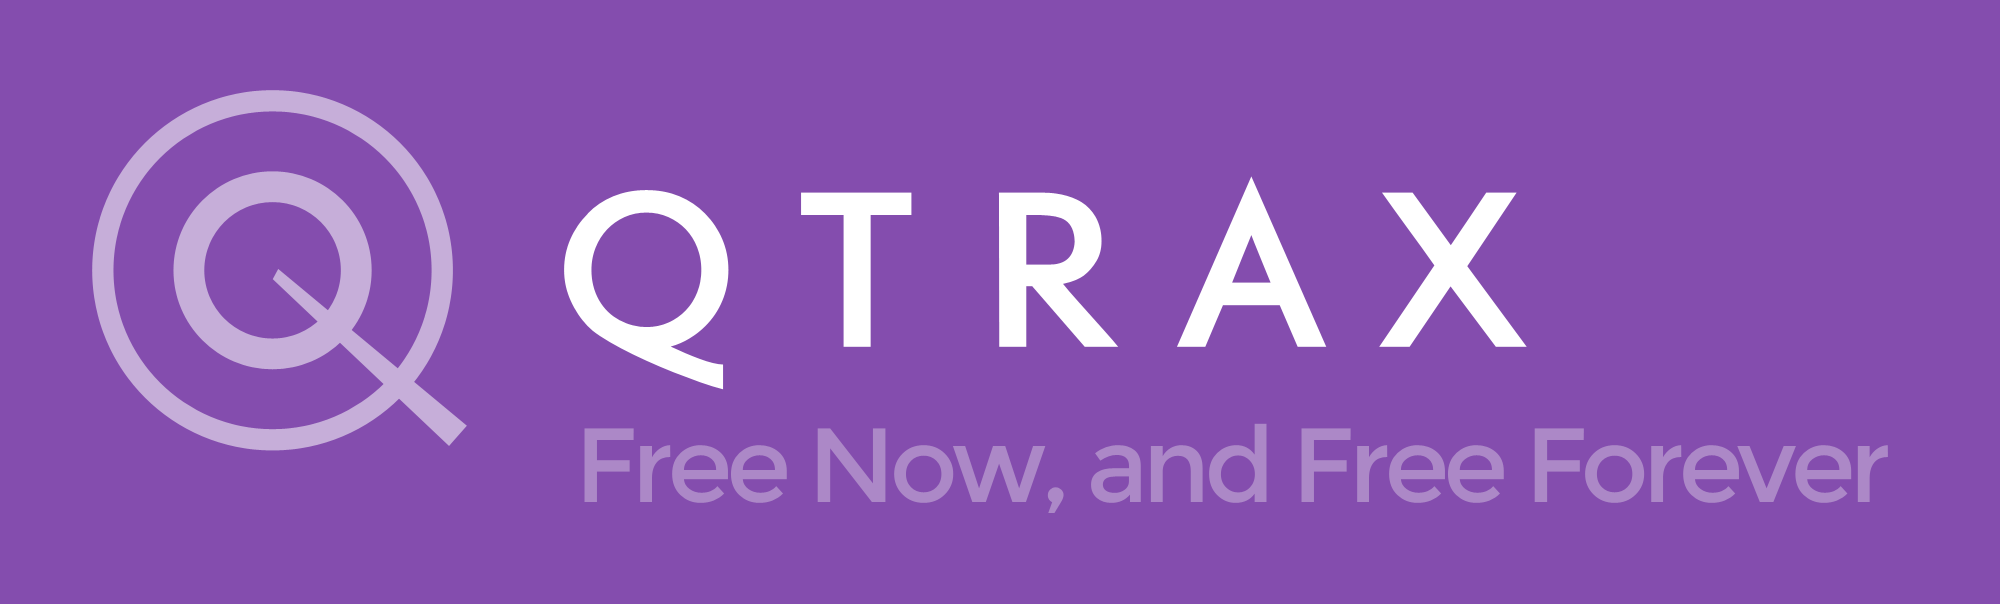 QTRAX_Logo_(Feb_2015)